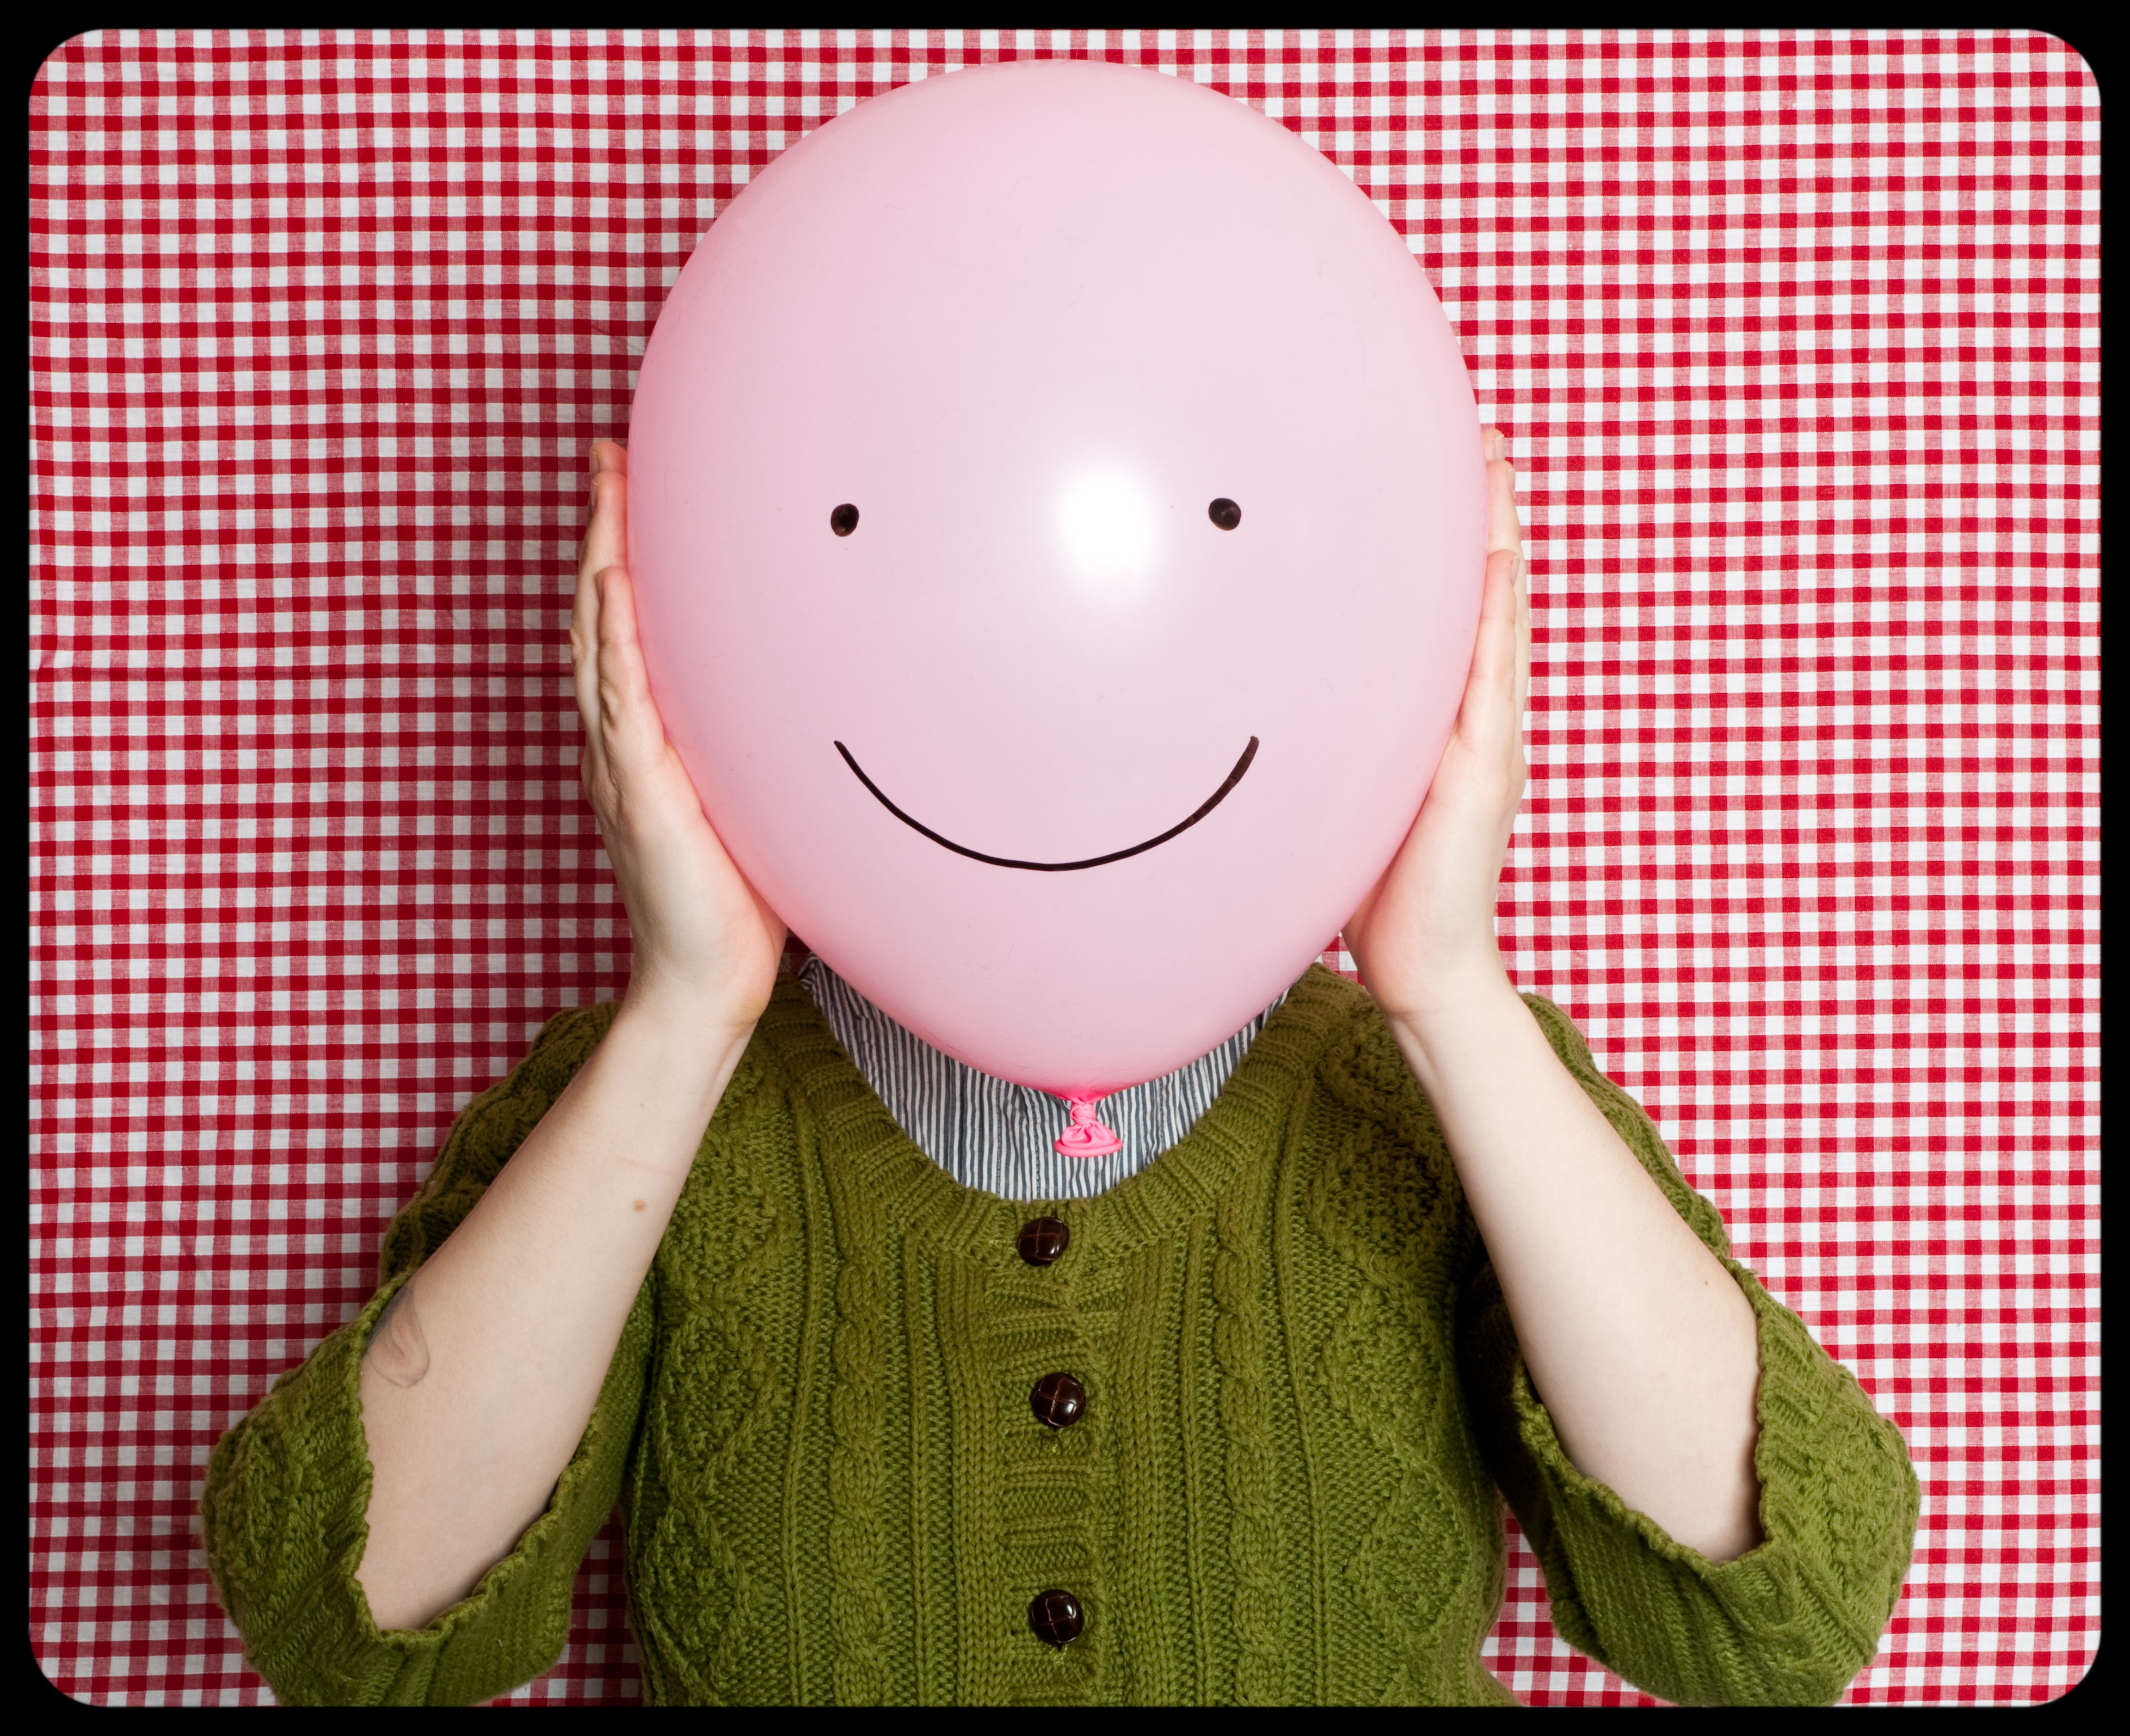 6 Tips To Change Negative Thinking